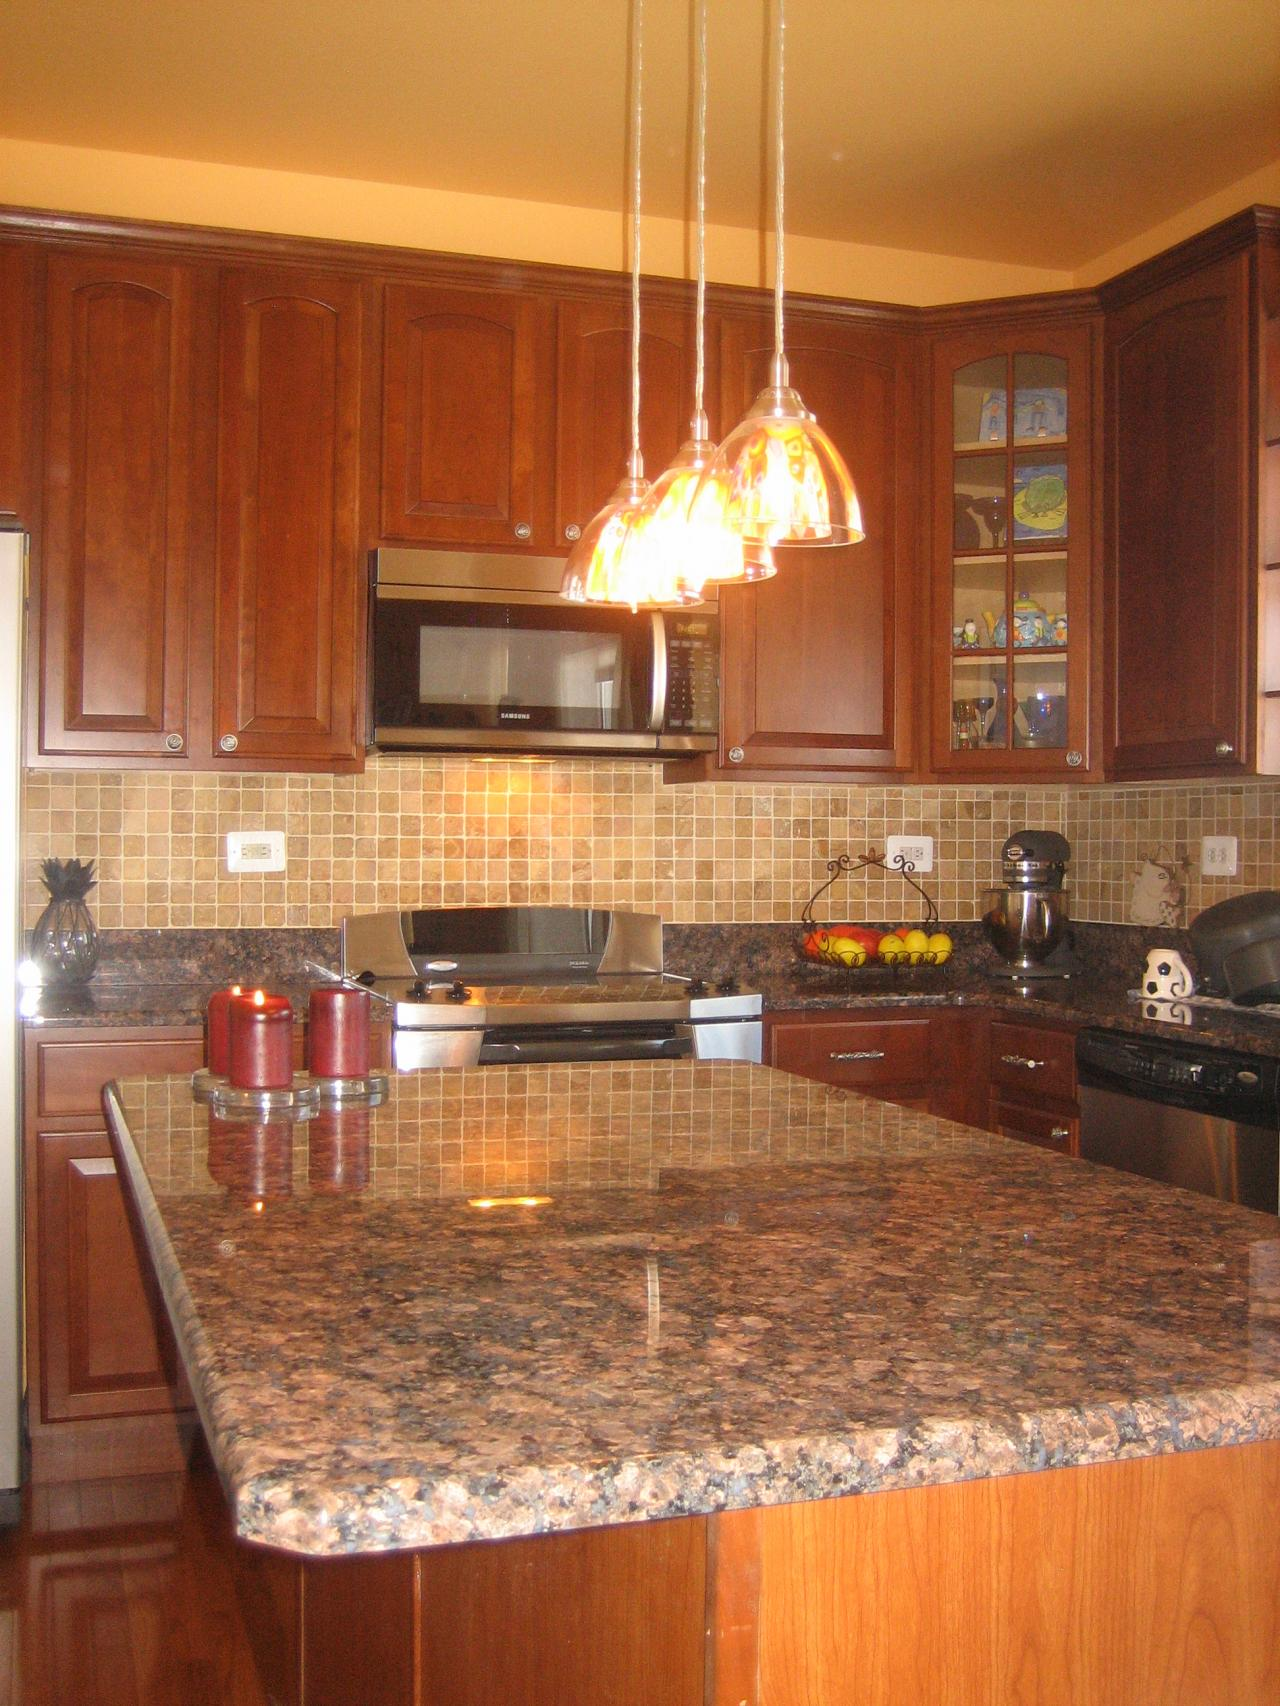 IMG 0217 249112816 large JPG. Lake Zurich IL Home Remodeling Bathroom Kitchen Renovation Contractor